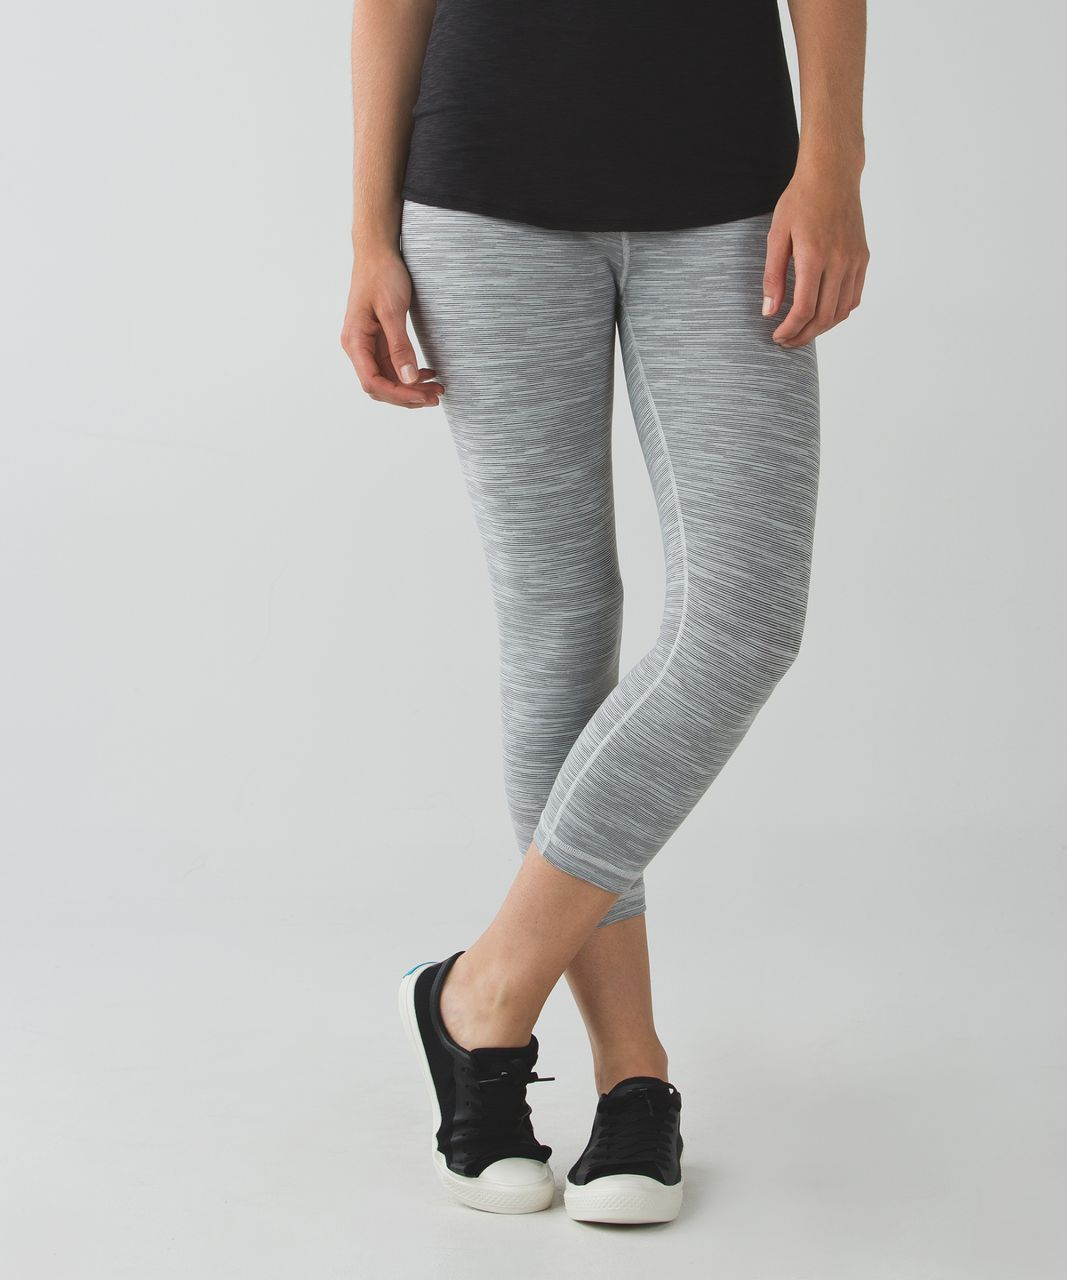 Lululemon Wunder Under Crop II (Roll Down) - Wee Are From Space Silver Spoon